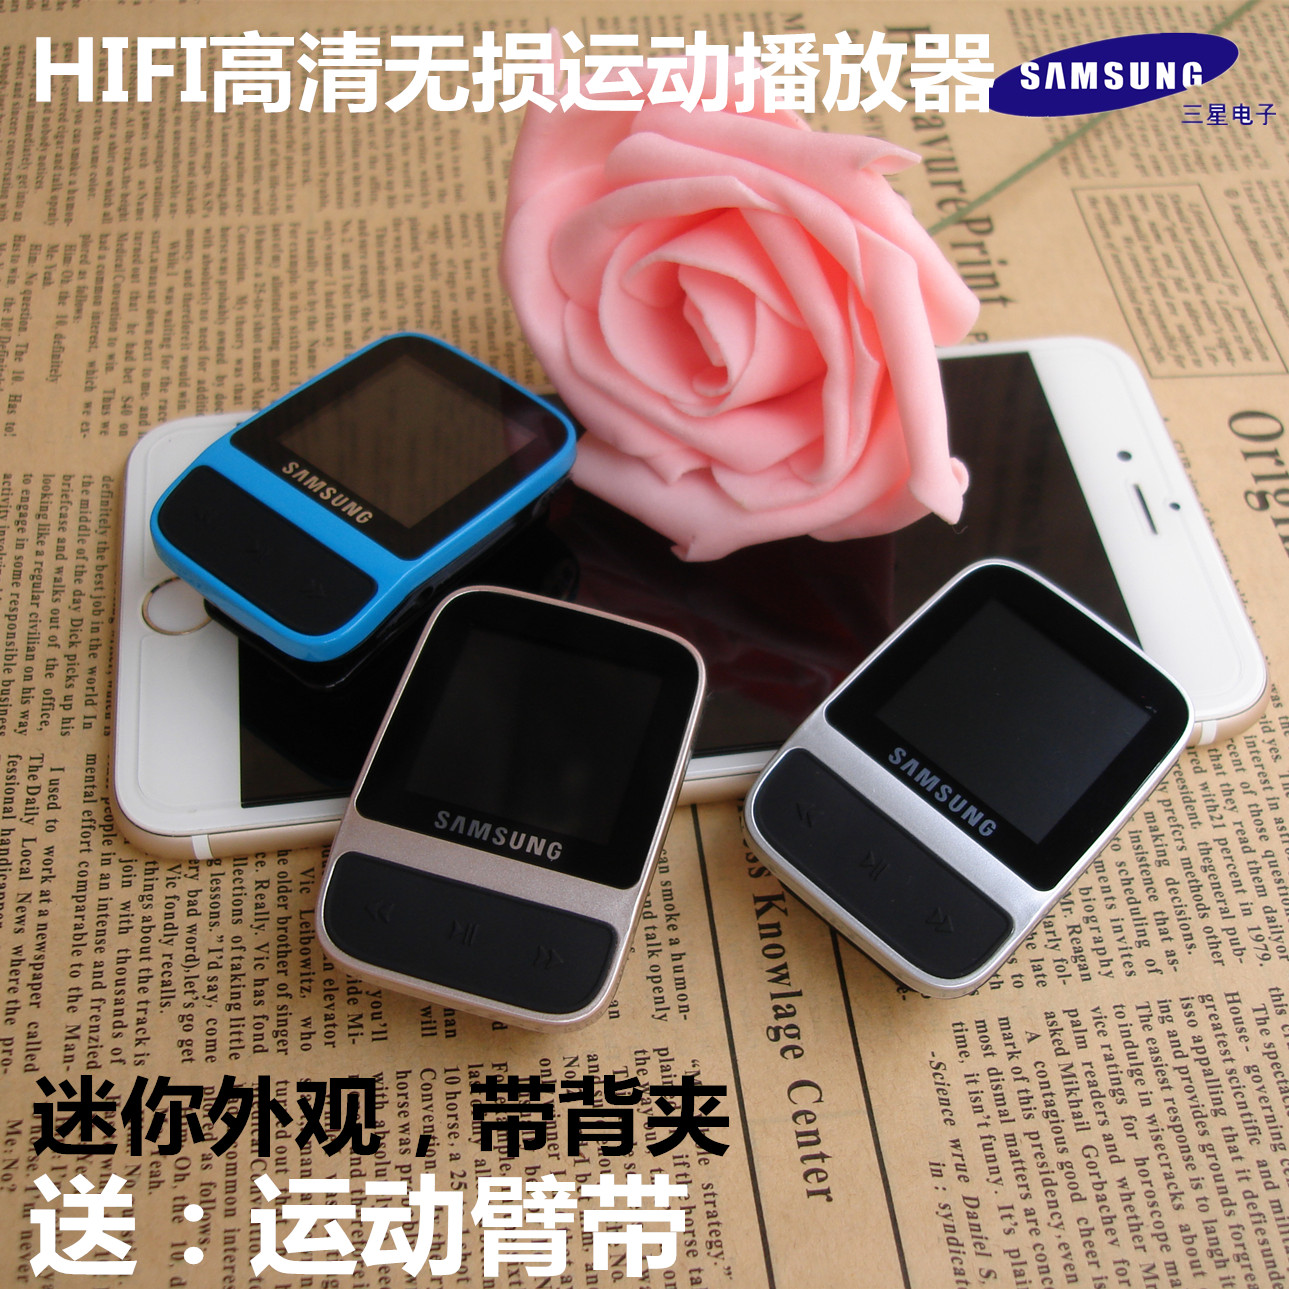 Samsung MP3 HD HIFI lossless player metal Shell touch key screen